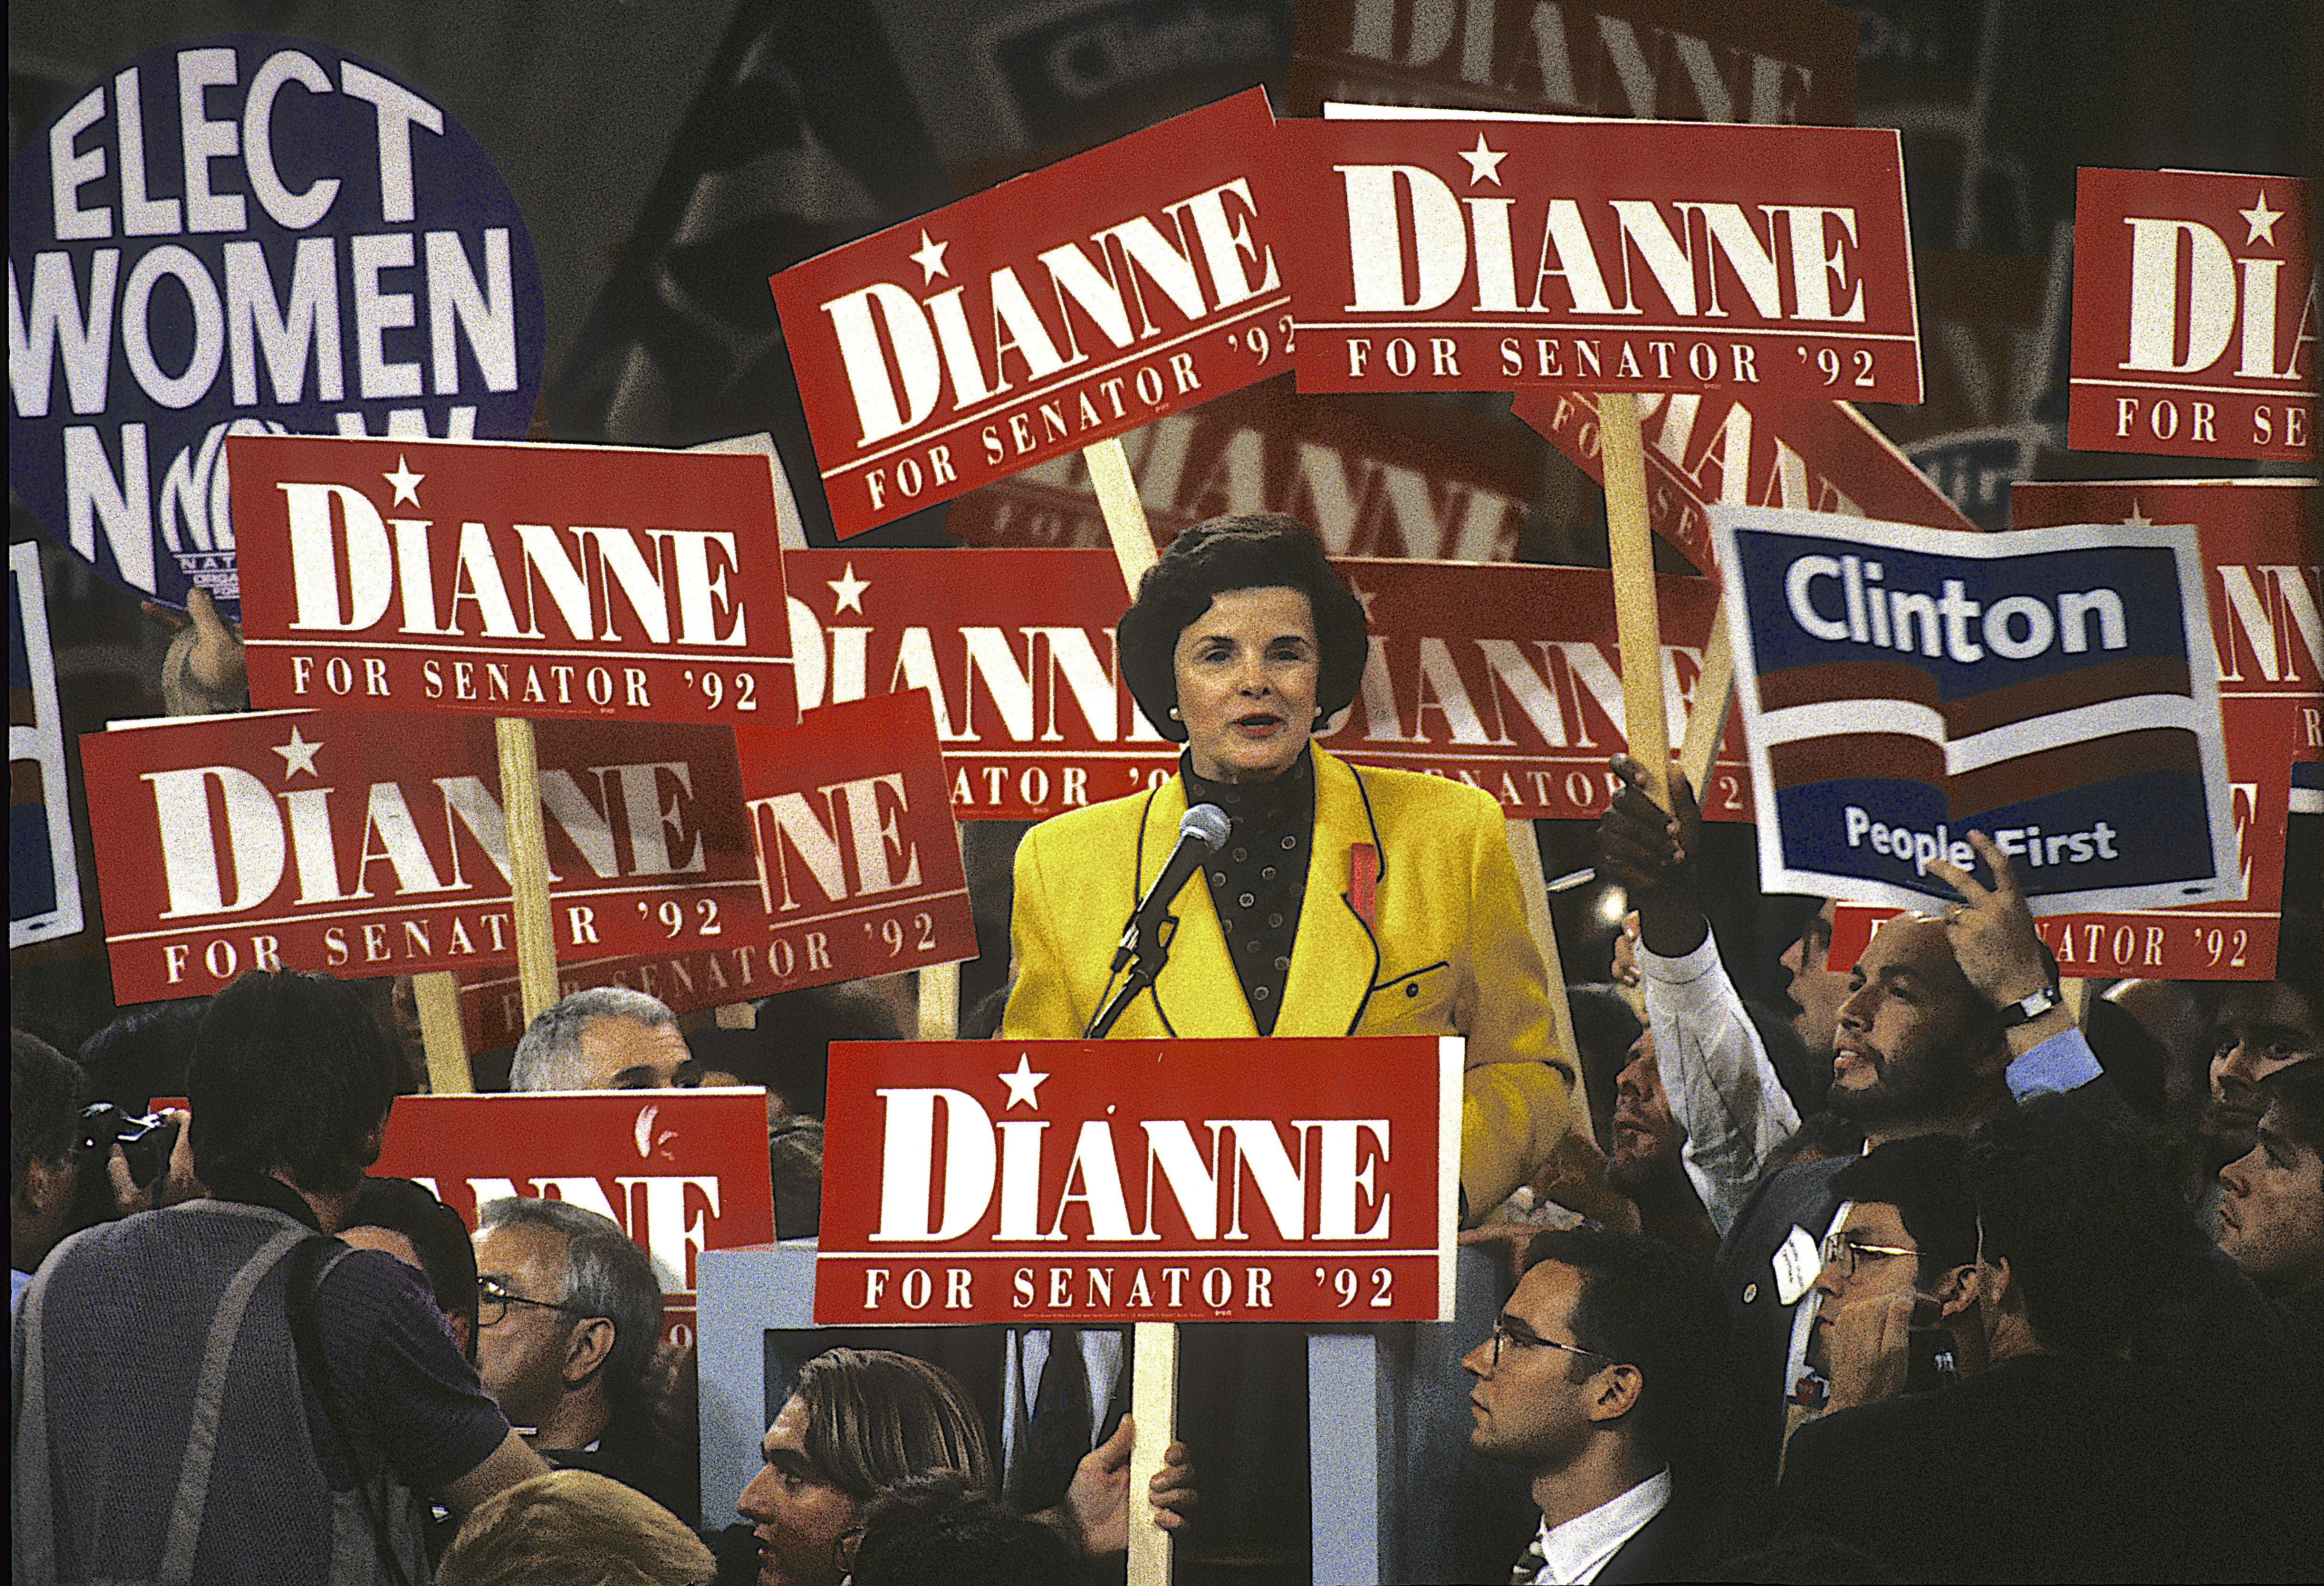 Dianne Feinstein, the Mayor of San Francisco, addresses the Democratic National Convention in 1992.